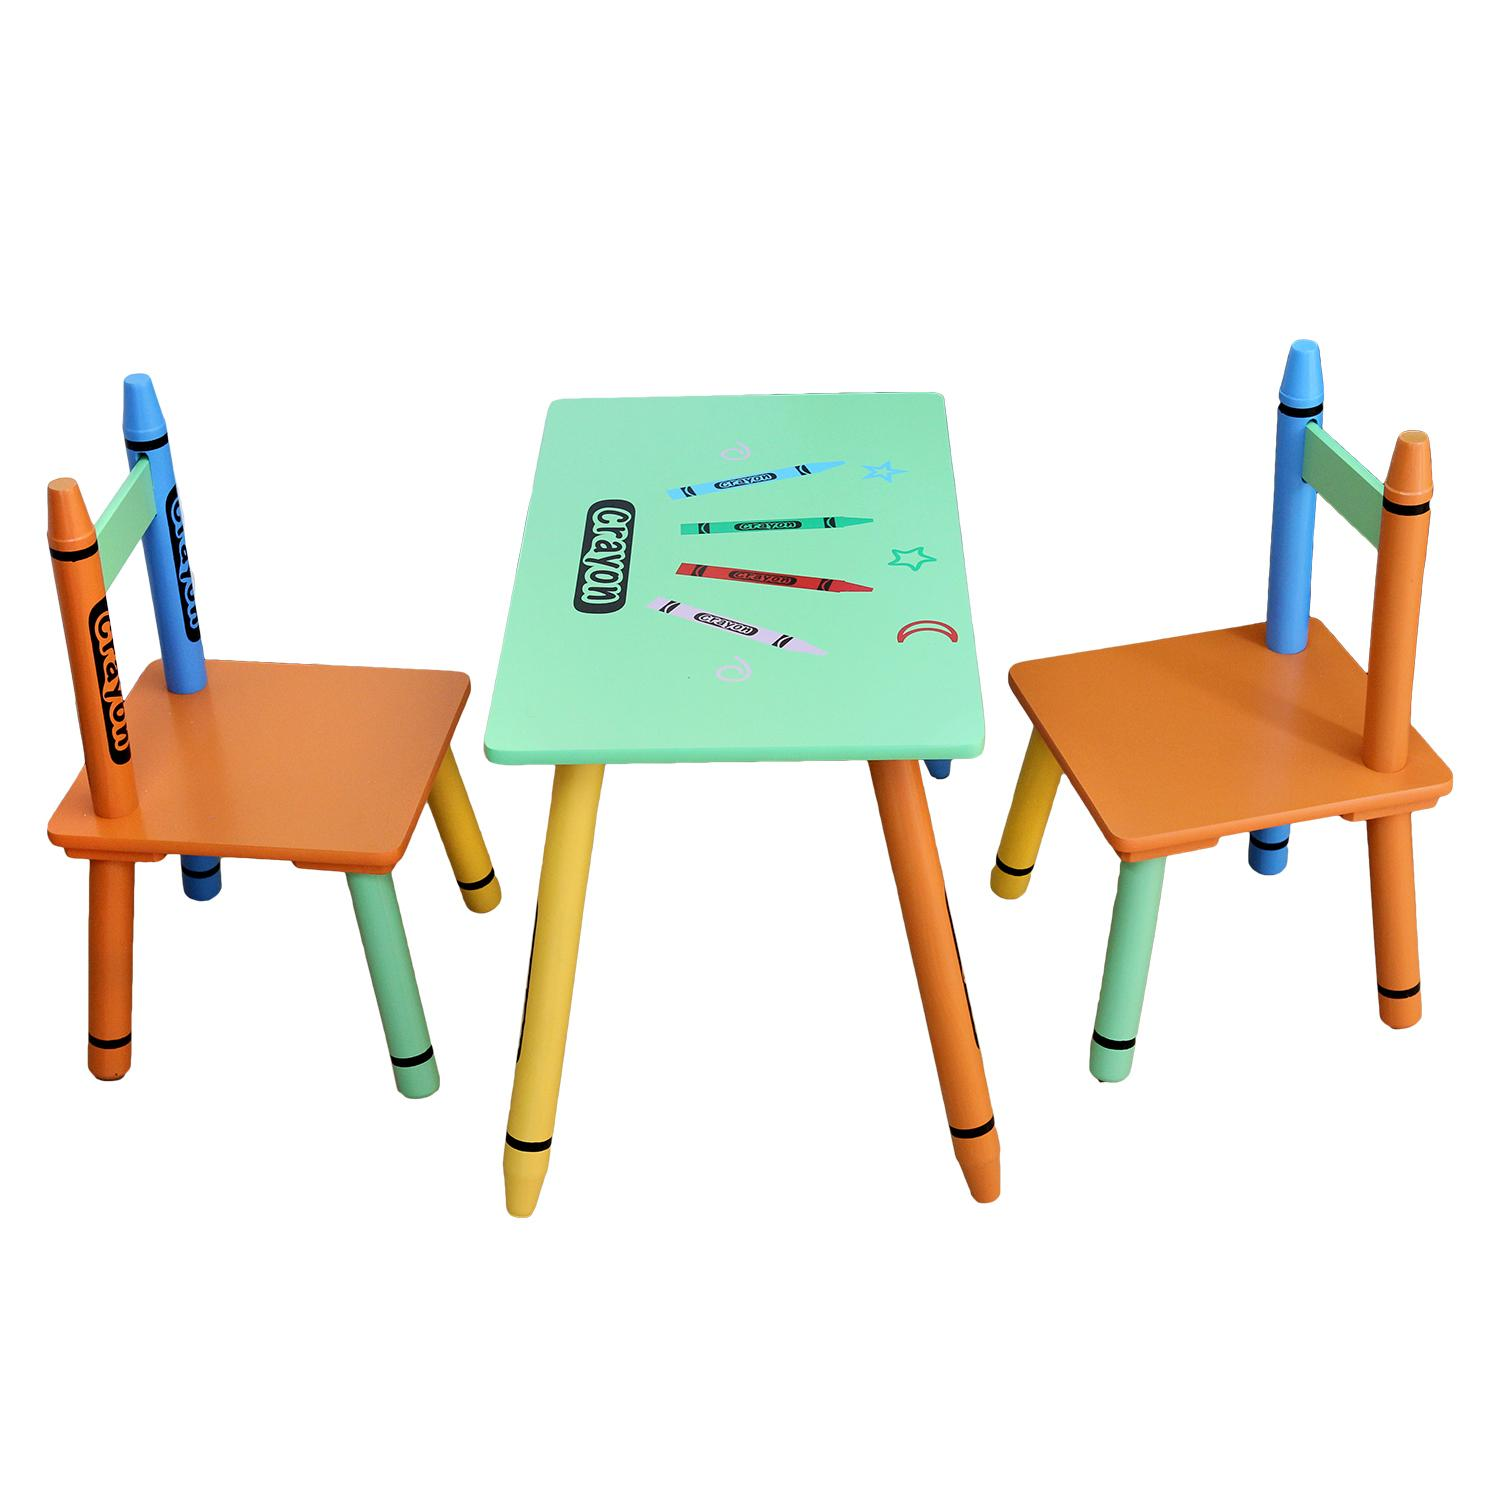 kiddi style childrens wooden table and chair set green baby. Black Bedroom Furniture Sets. Home Design Ideas